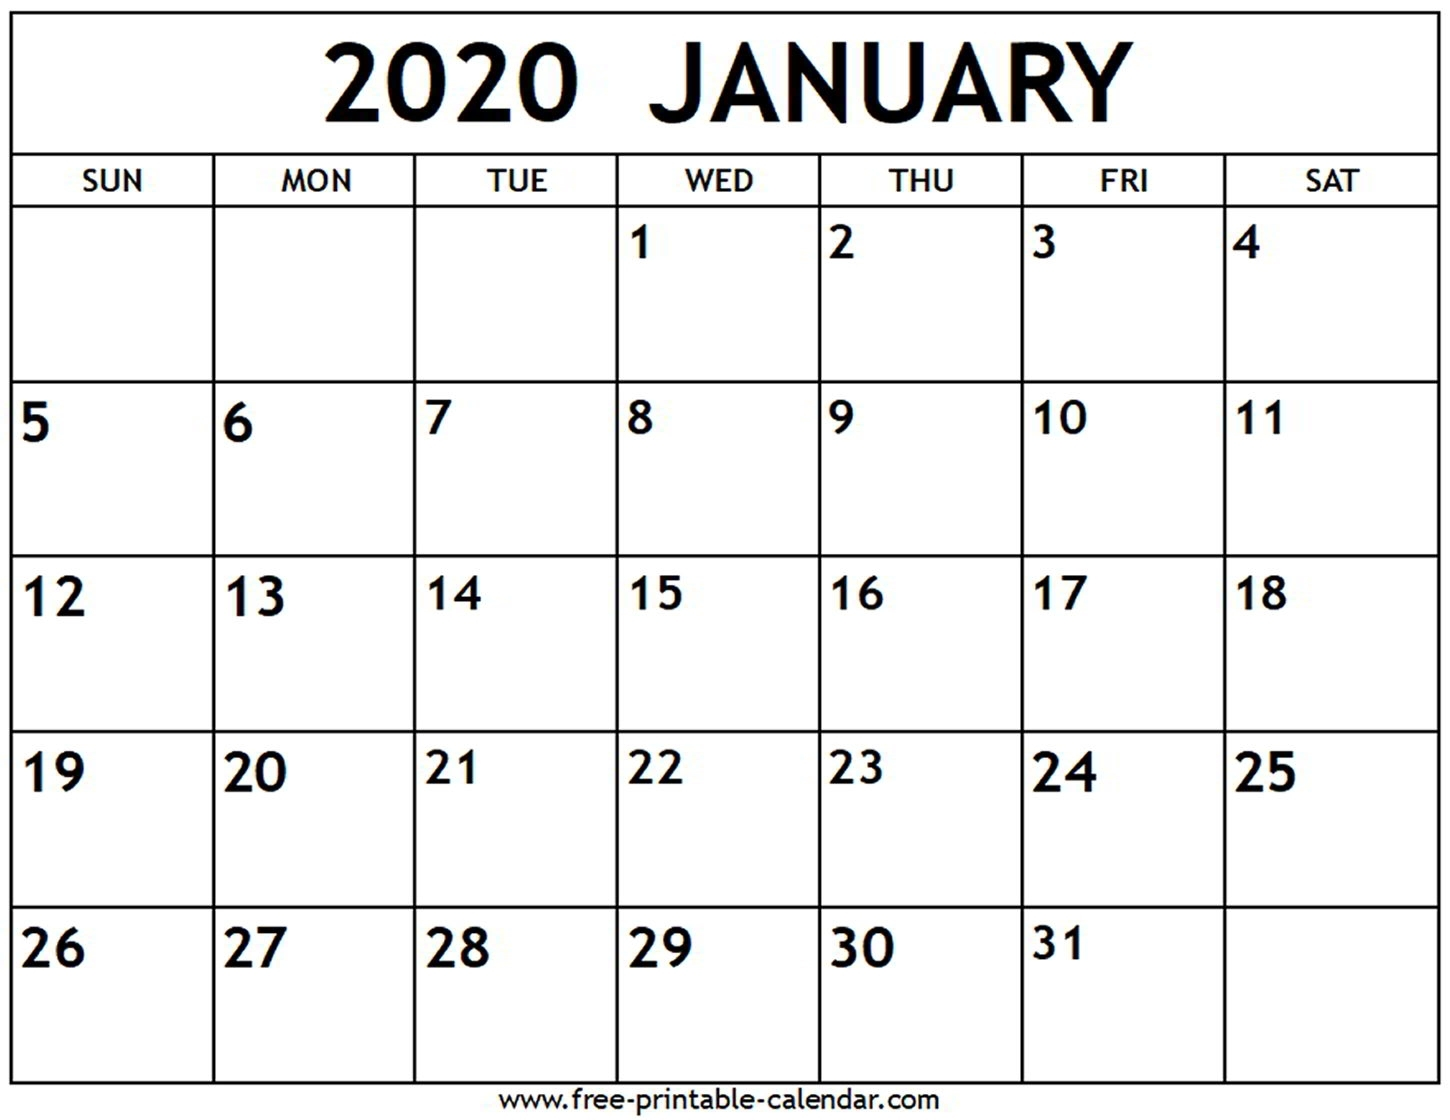 January 2020 Calendar - Free-Printable-Calendar in 2020 Calendar Printable Free With Added Oicture